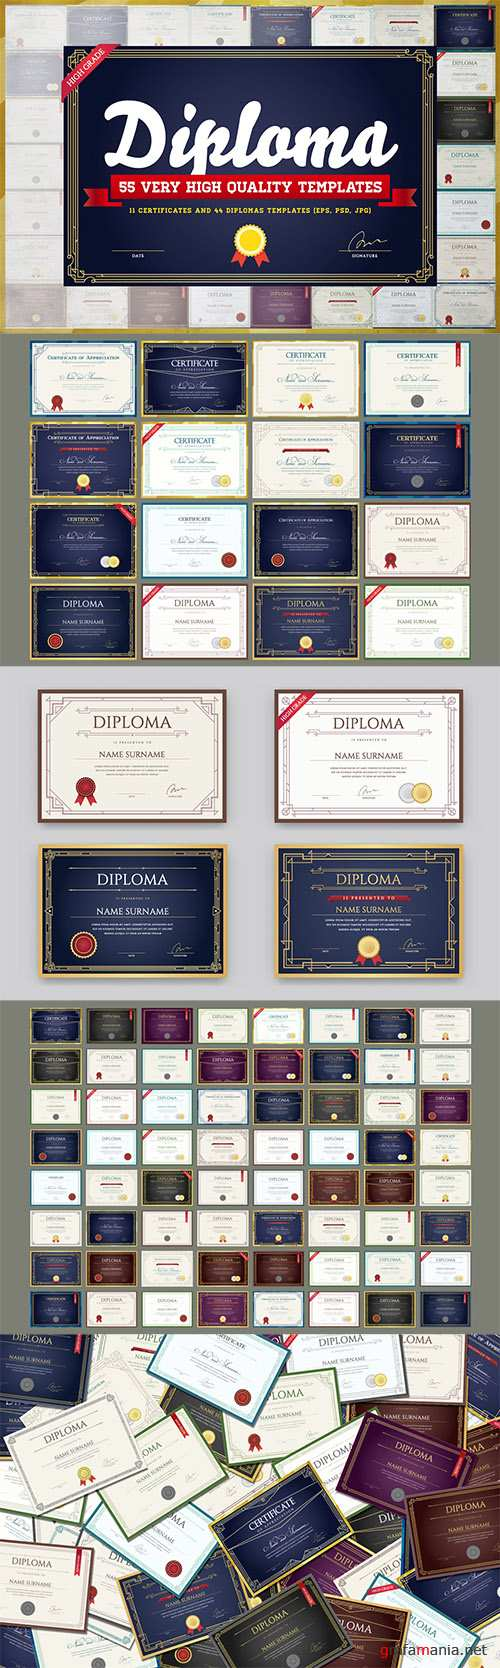 Awesome 55 Diploma & Certificate Templates